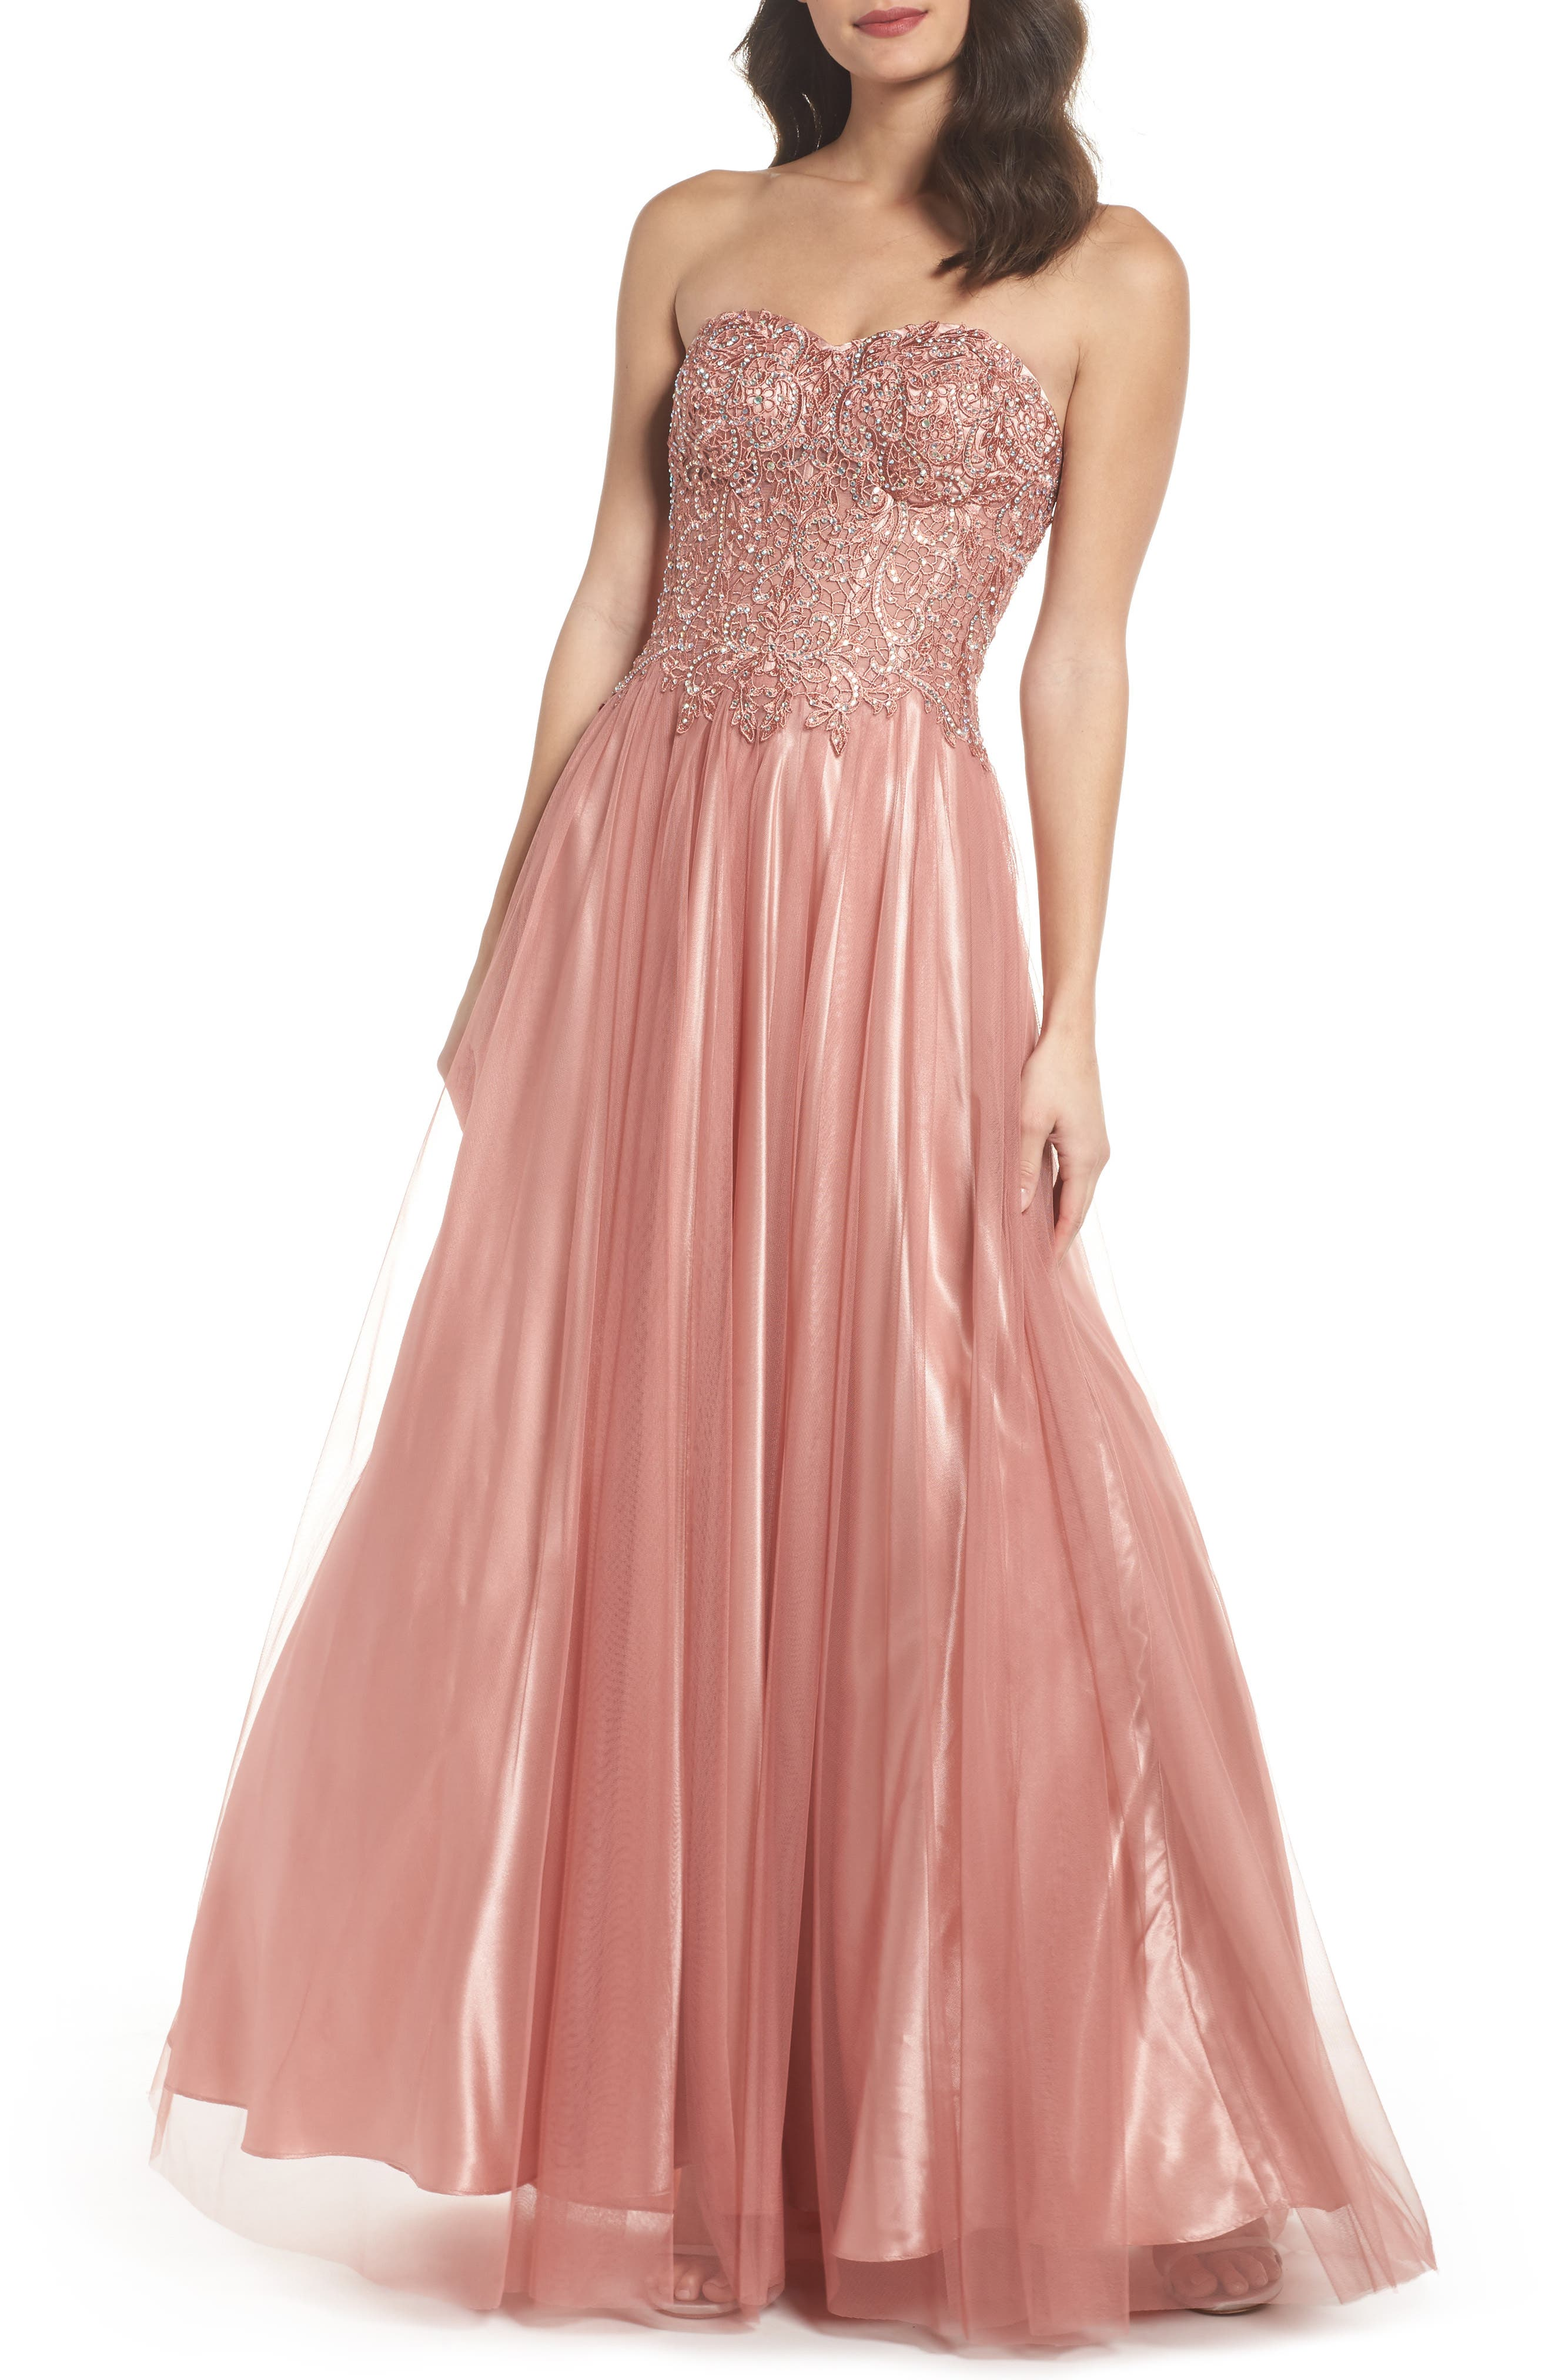 Embellished Corset Ballgown,                         Main,                         color, 654